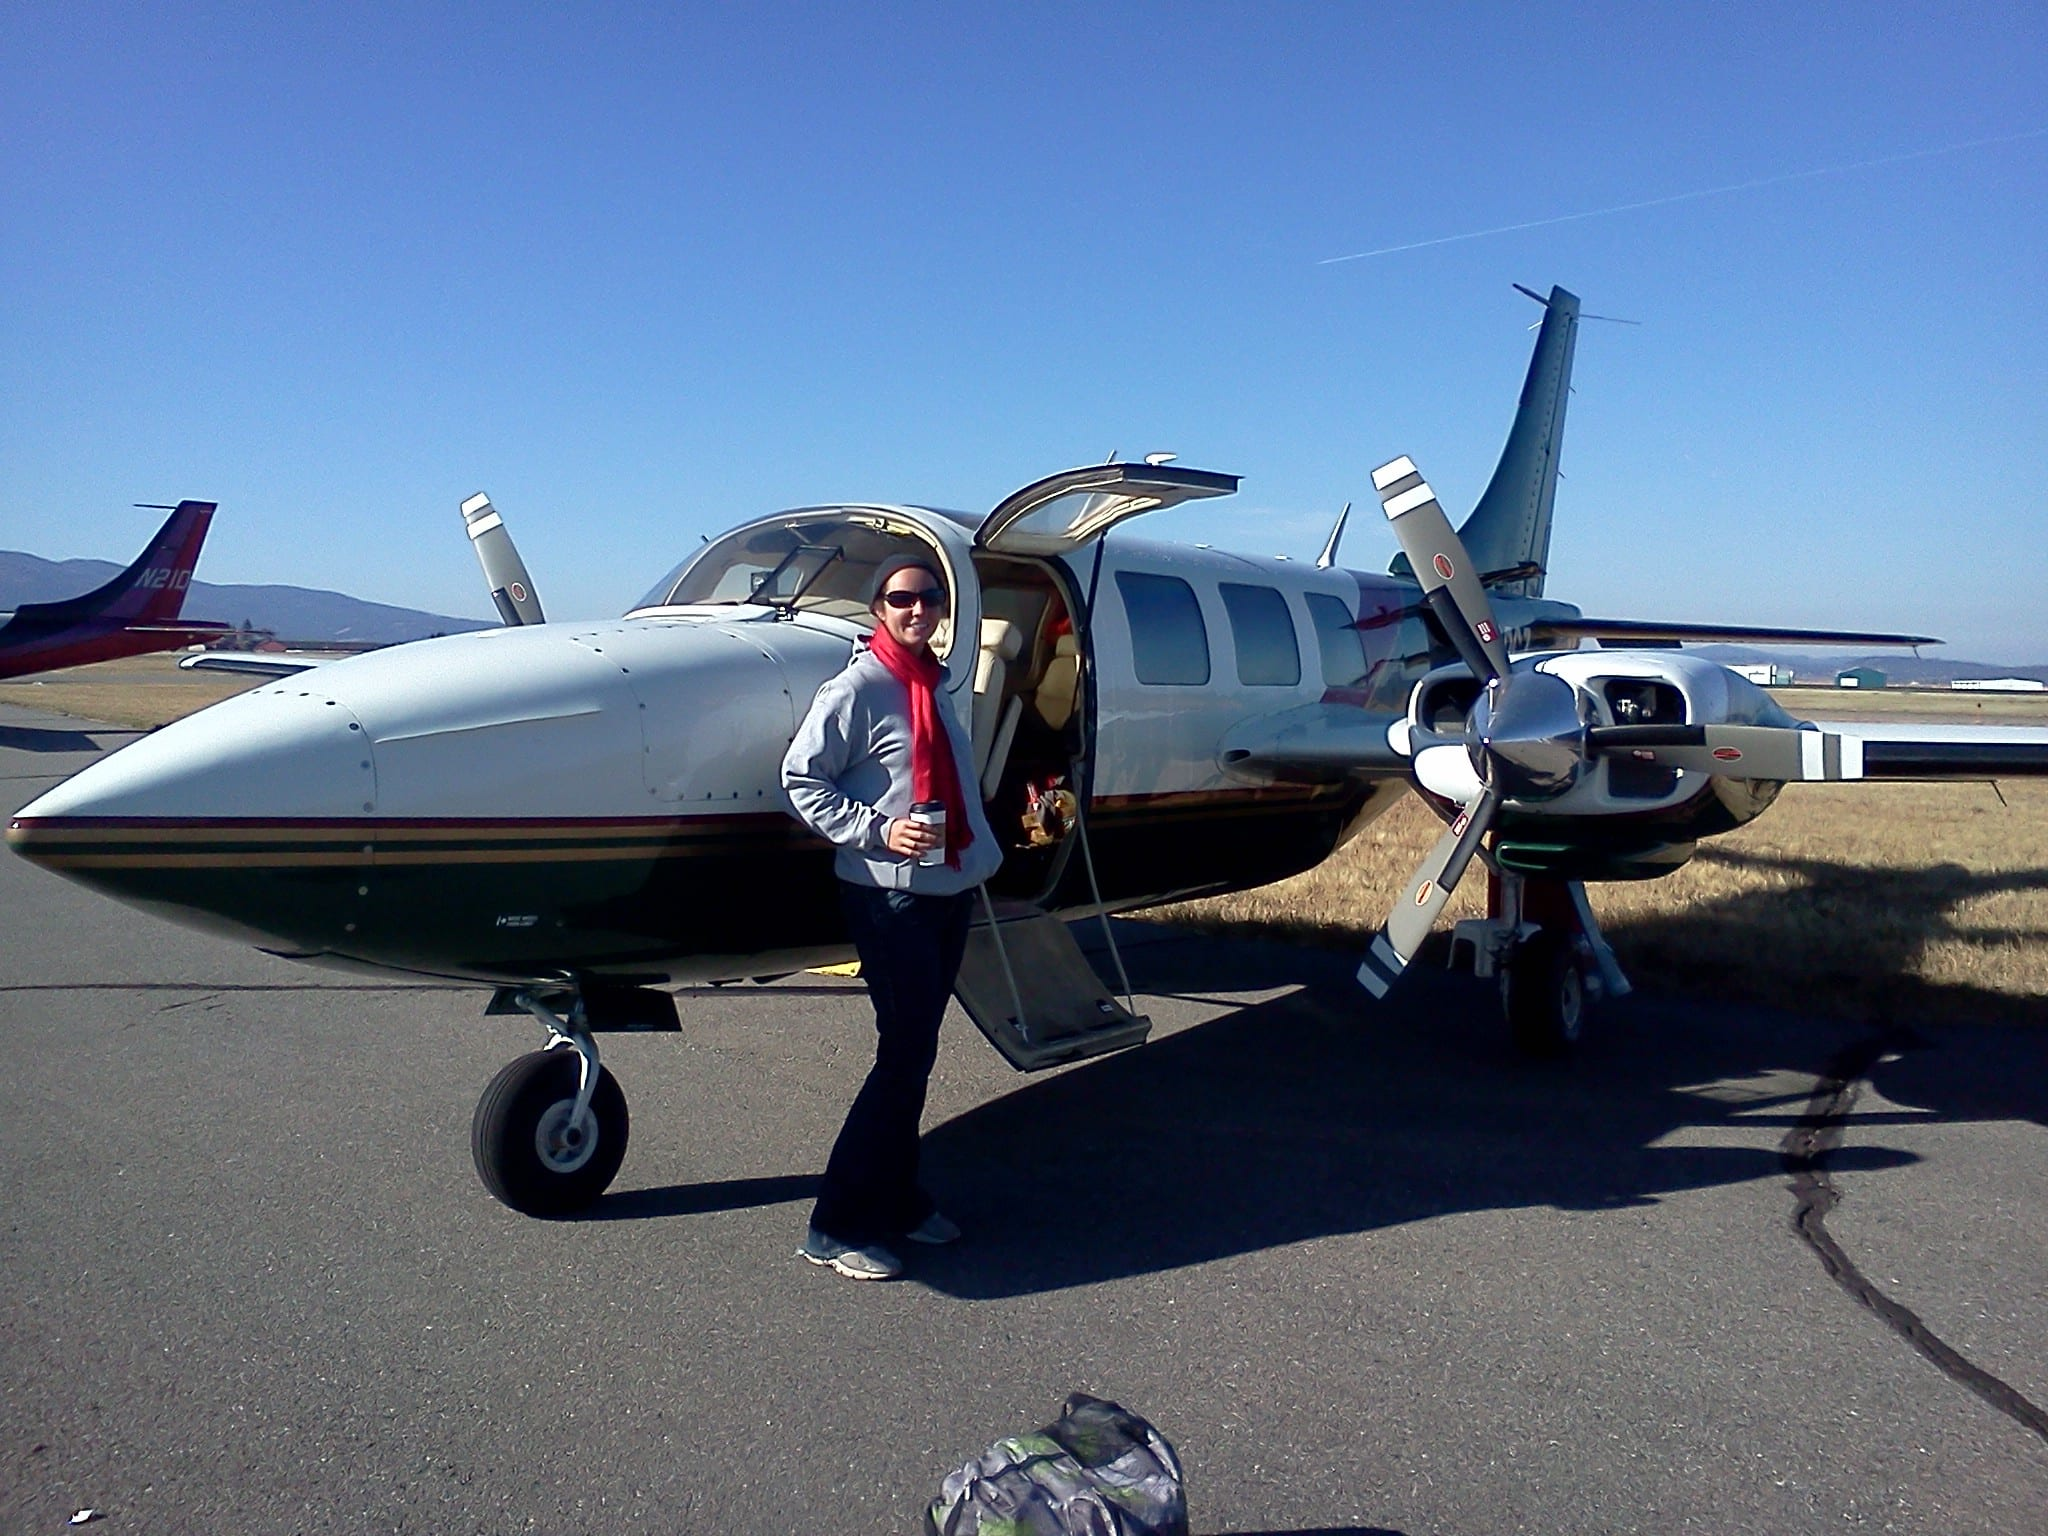 Travel writer hitchhiking around the country — on GA aircraft